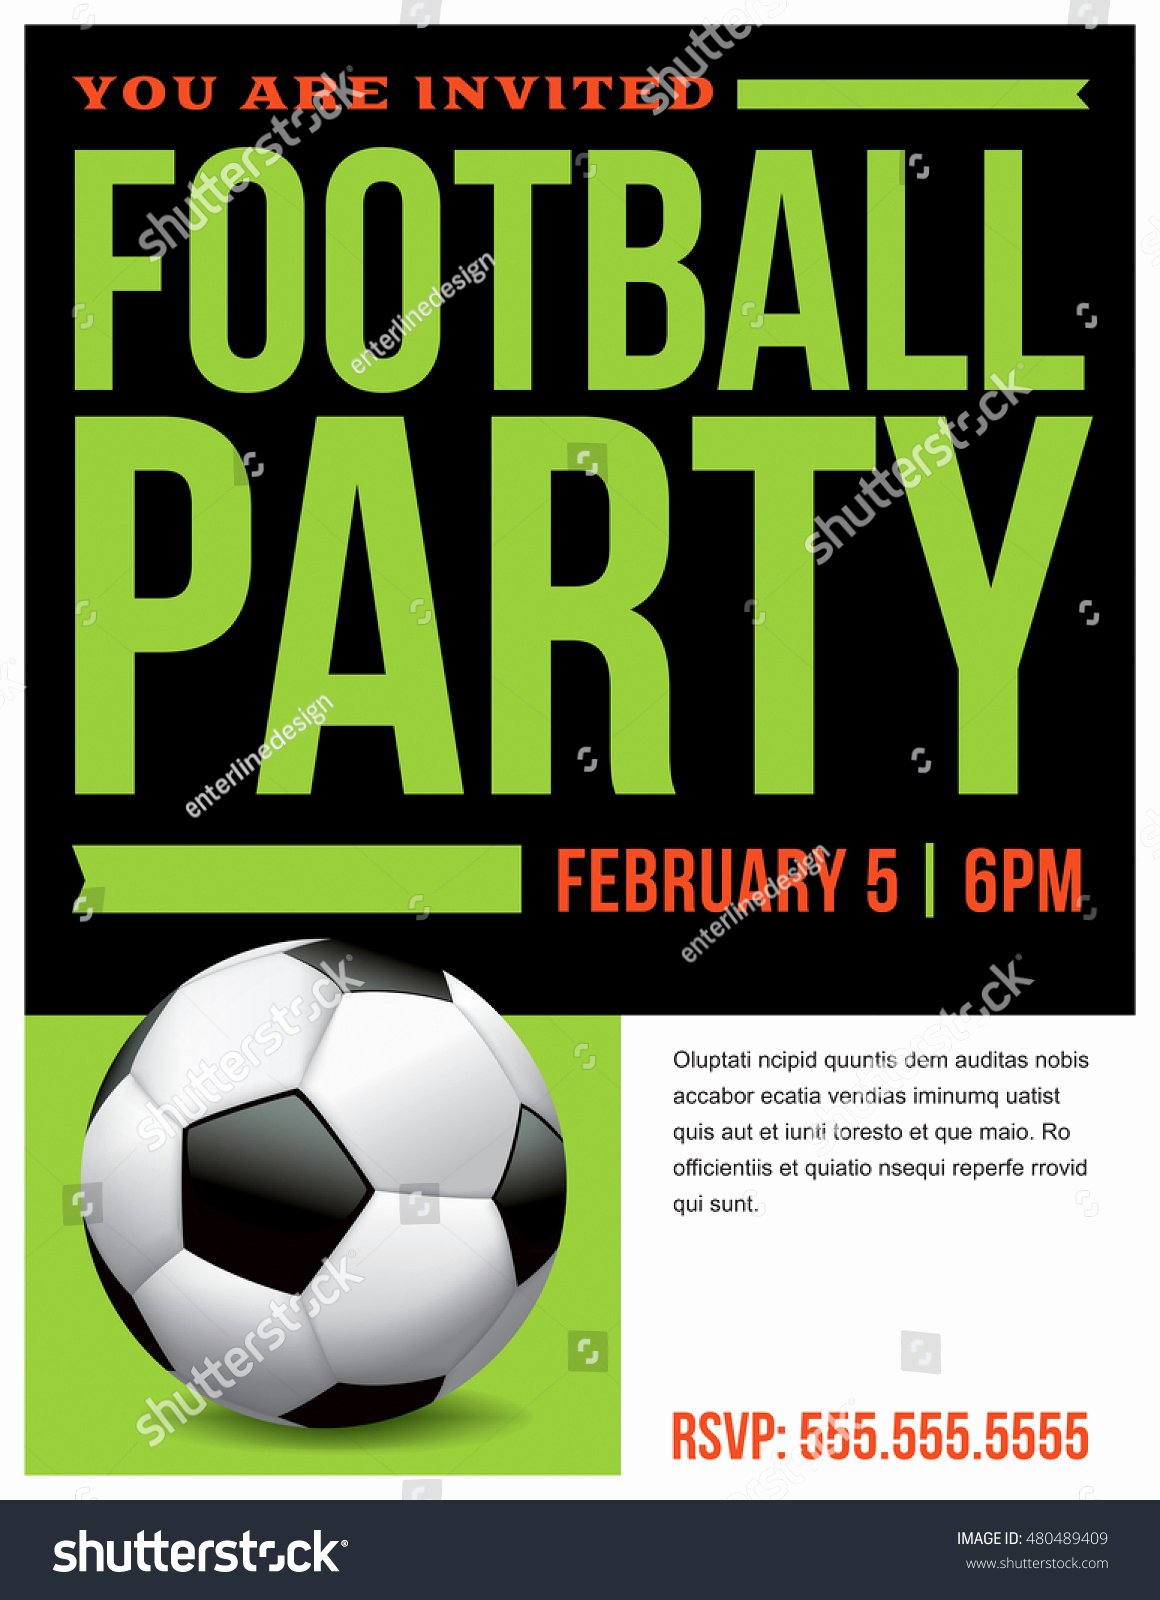 Football Party Invitation Template Inspirational Flyer soccer Football Party Invitation Template Stock